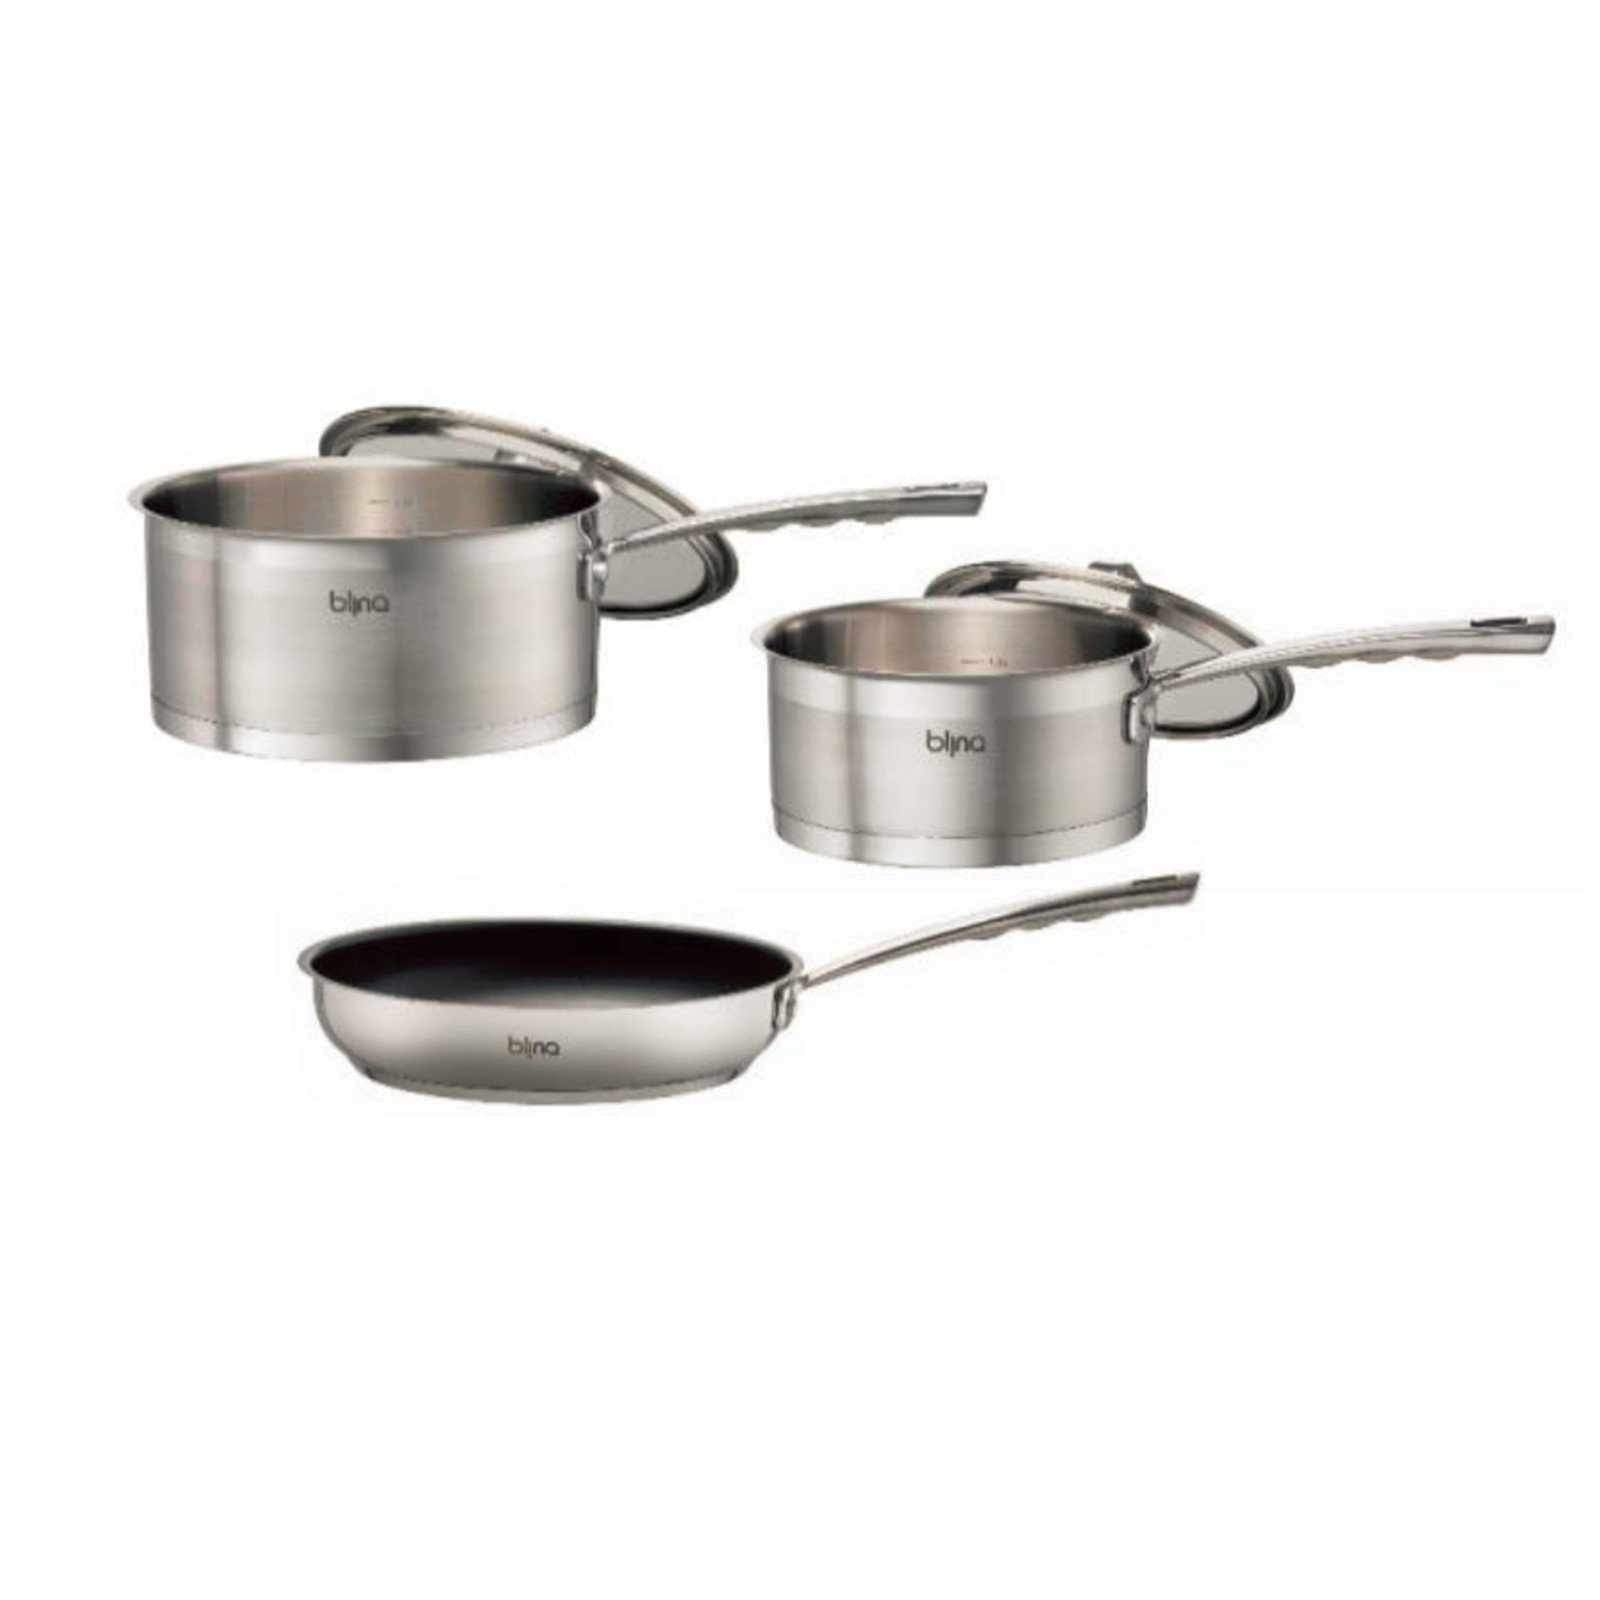 Blinq Gourmet 3pcs Induction Cookware Set - Stainless Steel-Stainless Steel Cookware Set-Chef's Quality Cookware